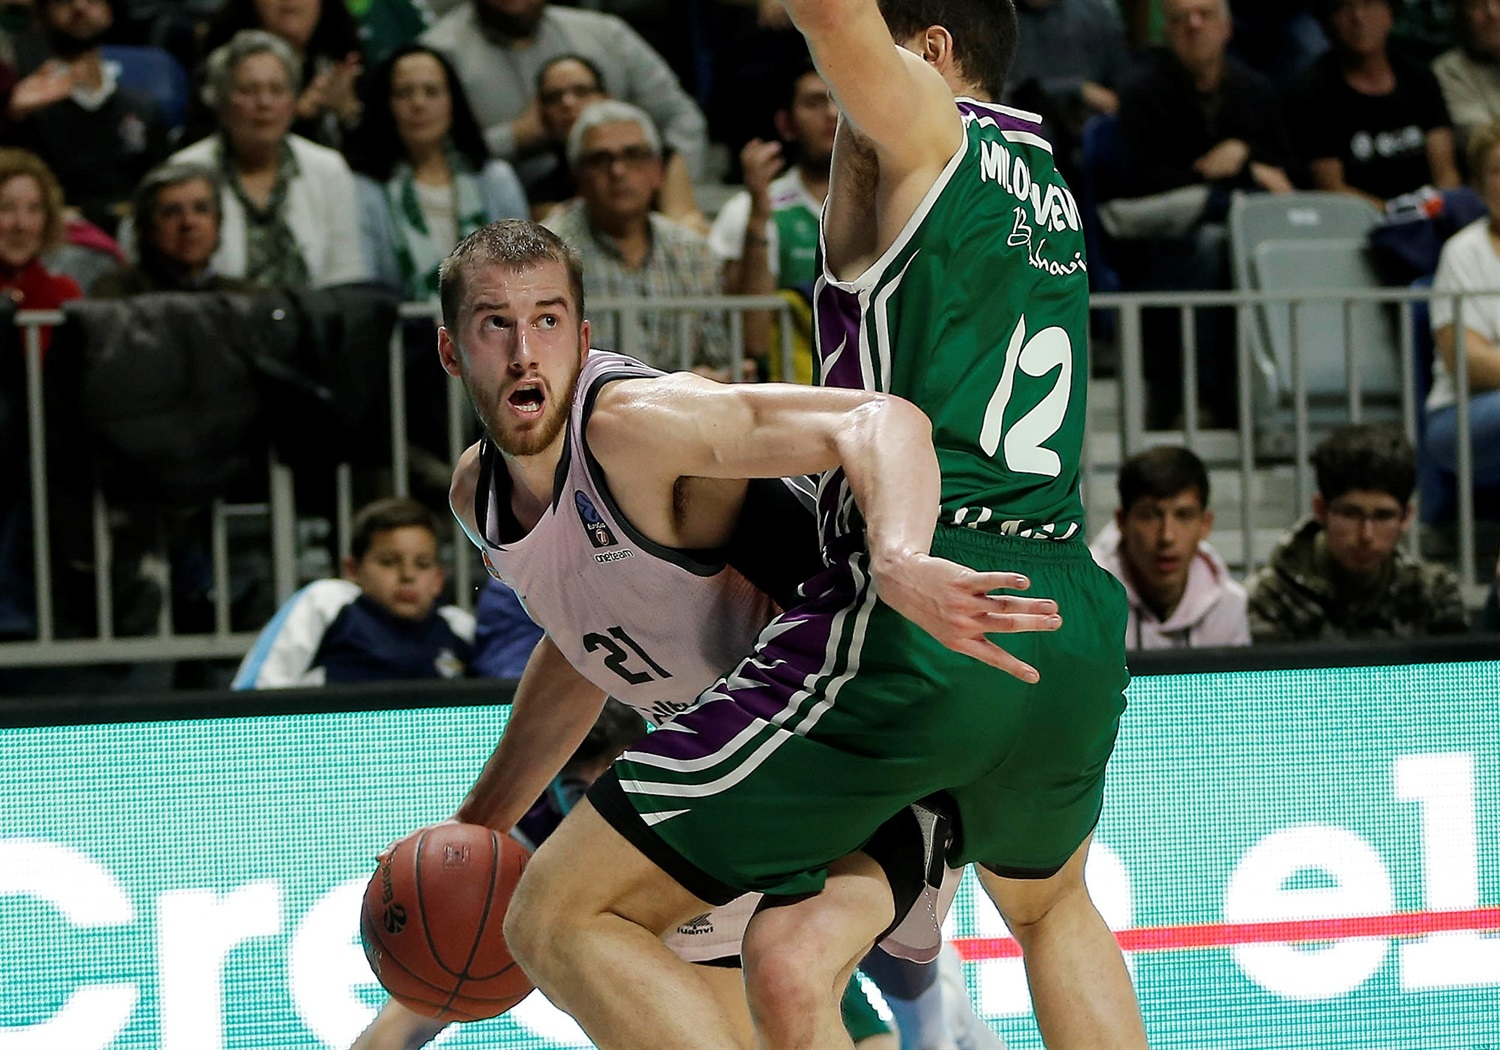 Matt Thomas - Valencia Basket (photo Unicaja - Mariano Pozo) - EC18